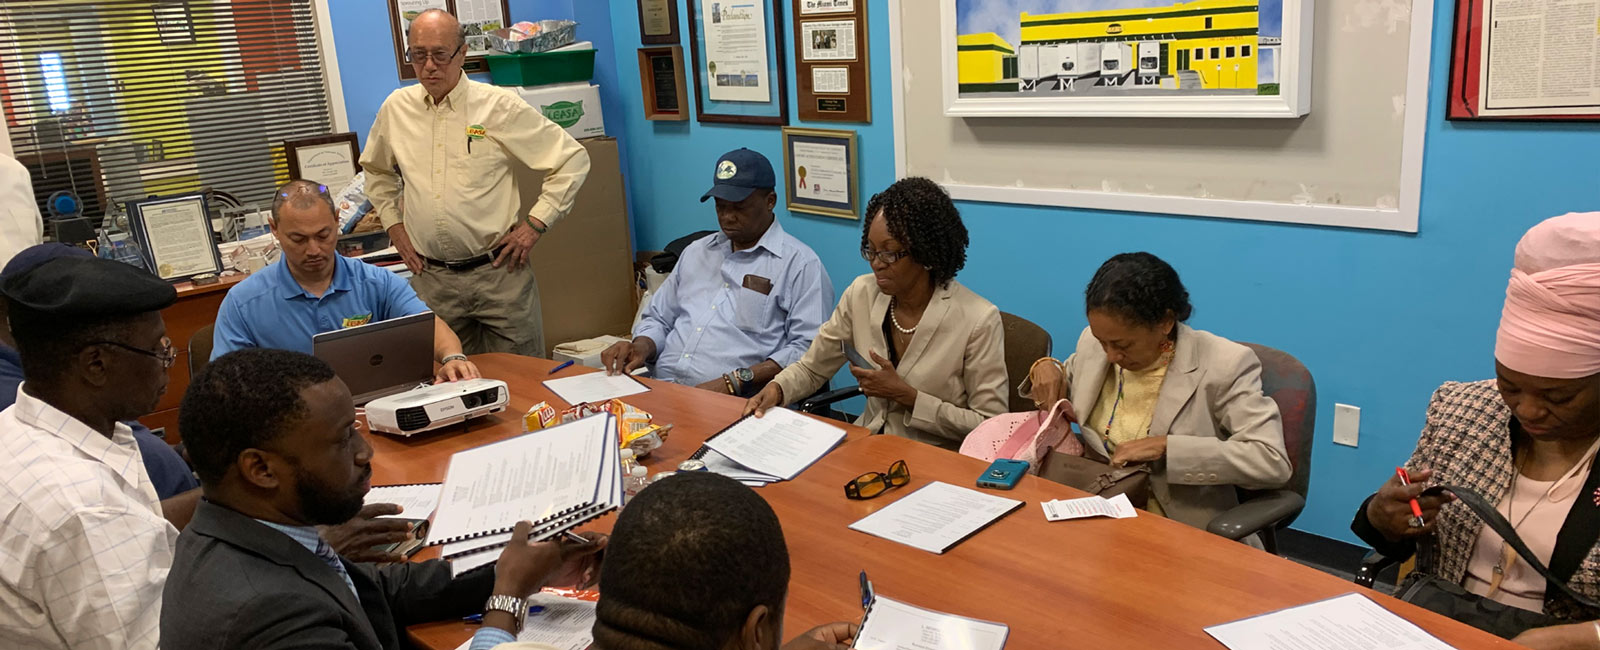 leasa-industries-meets-with-79th-street-initiative-team.